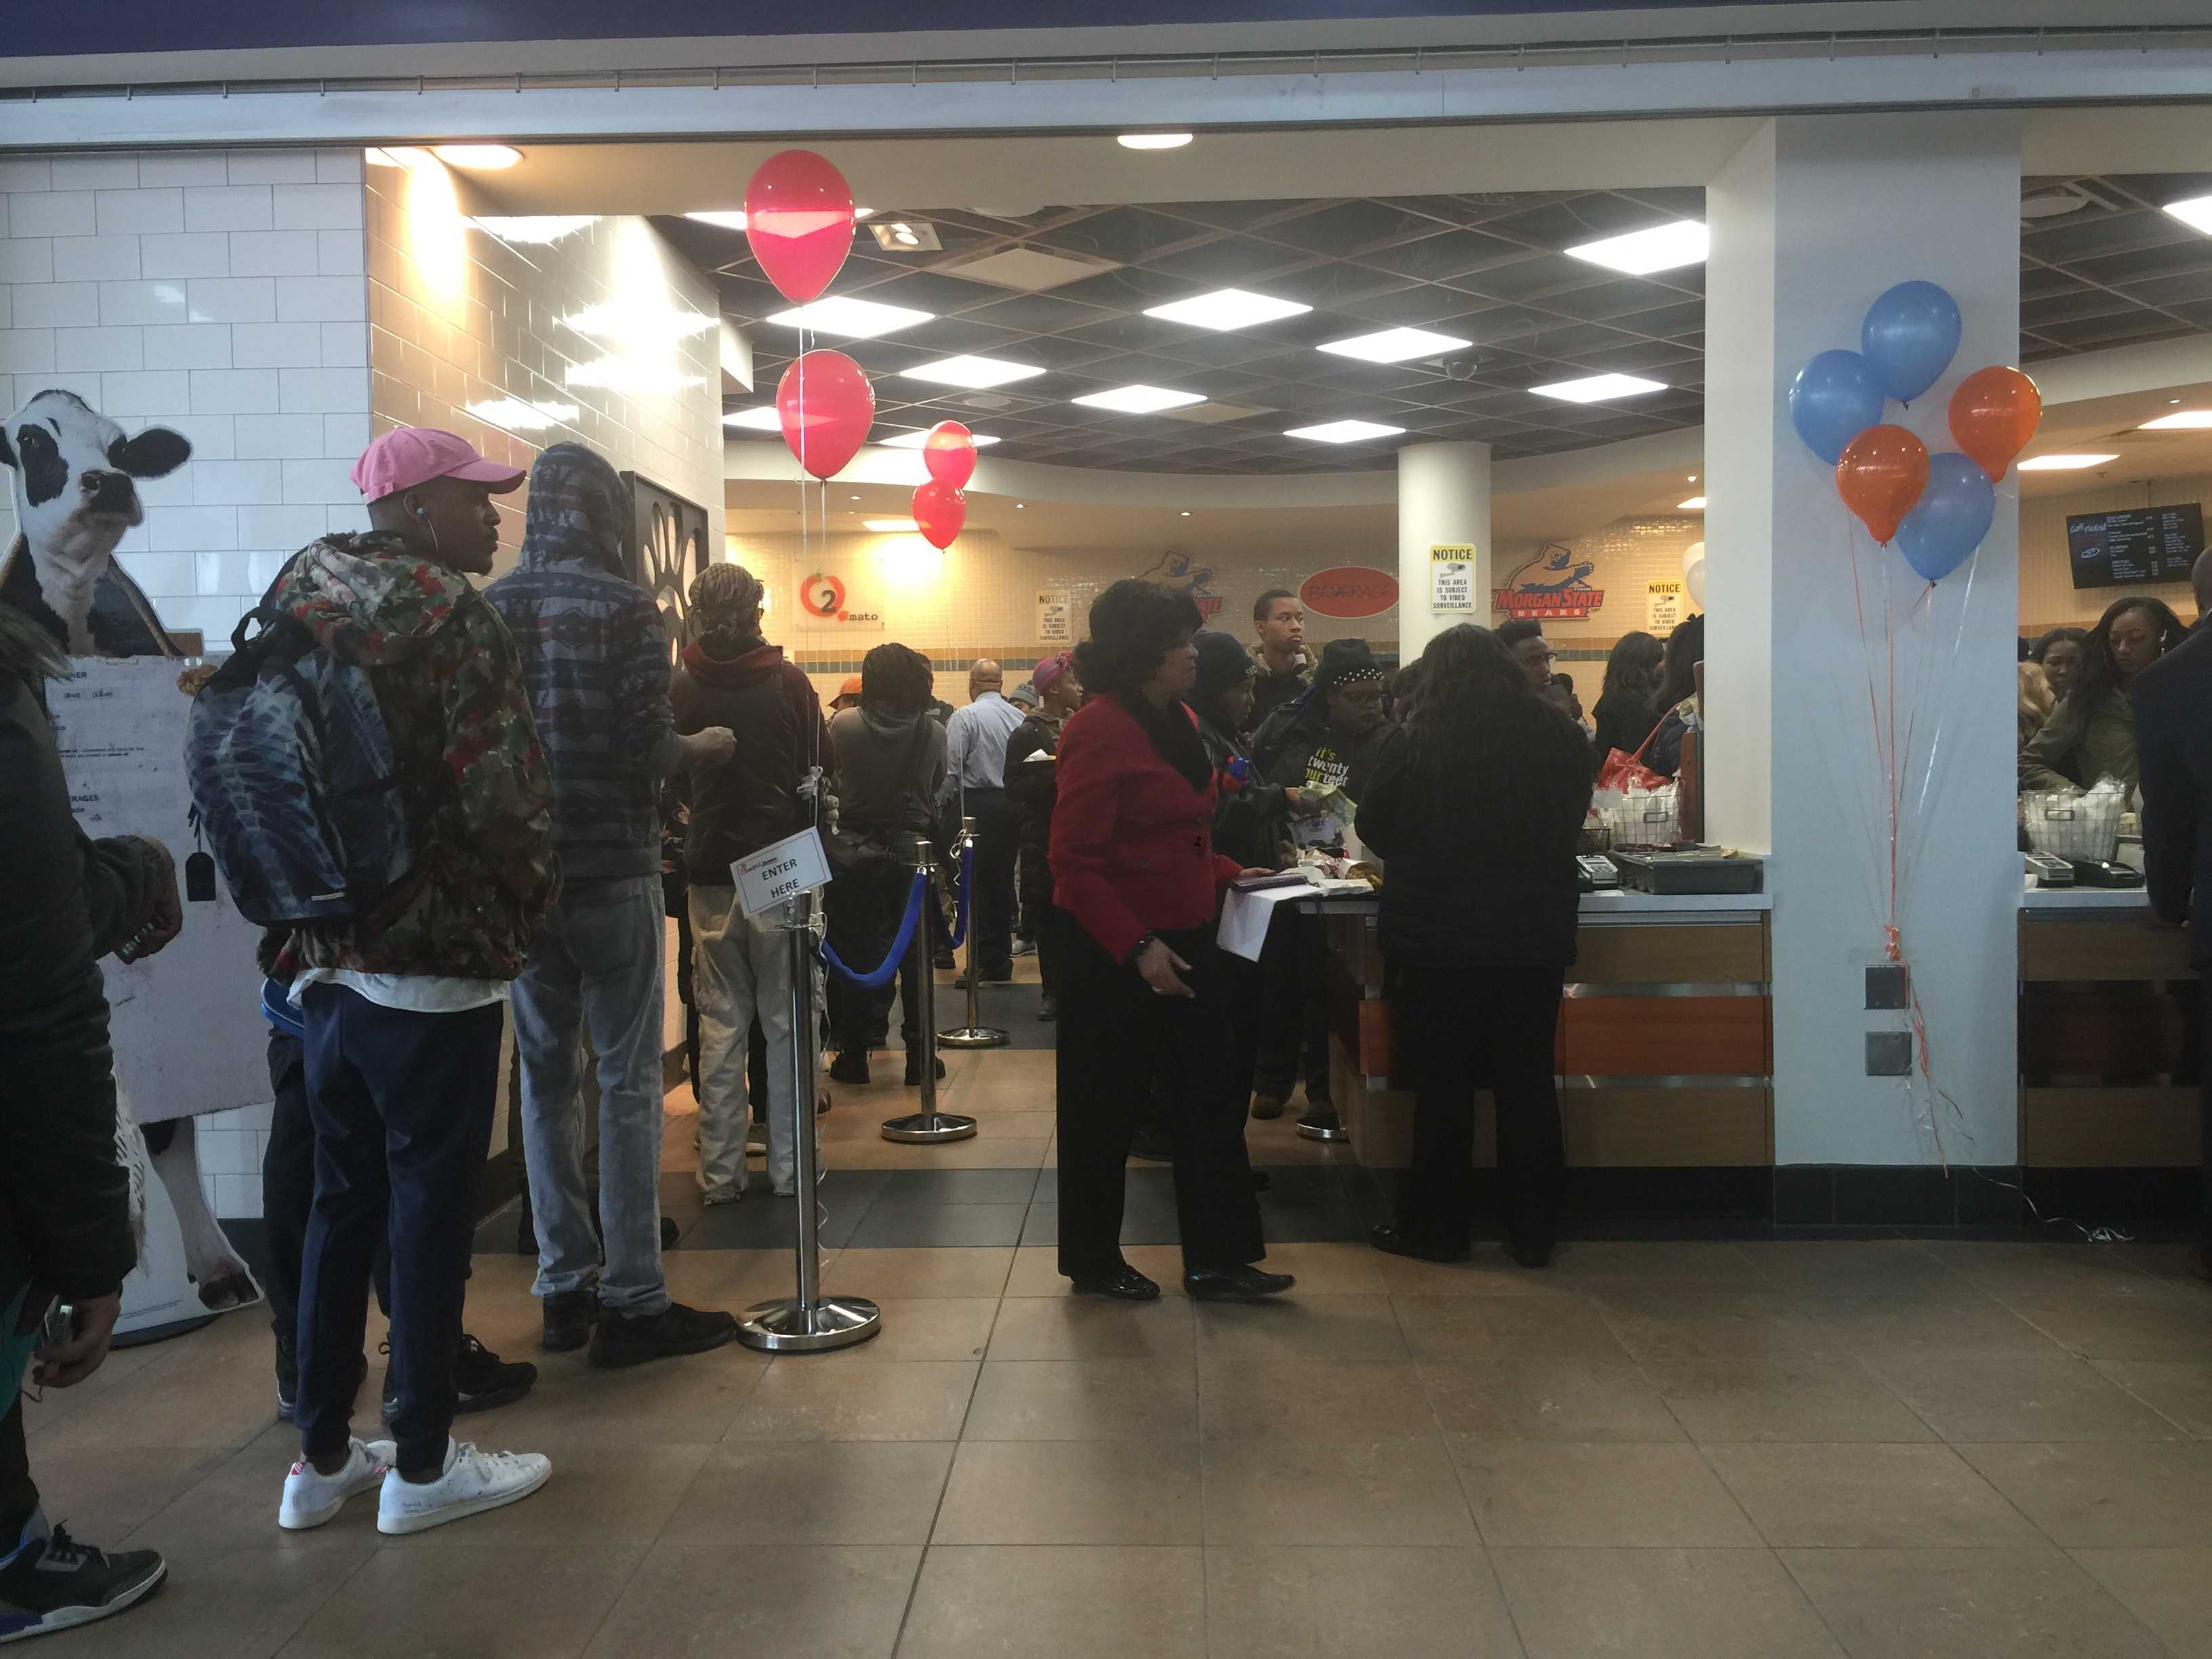 Students stand in line in the University Student Center Food Court during its reopening. Photo by Benjamin McKnight III